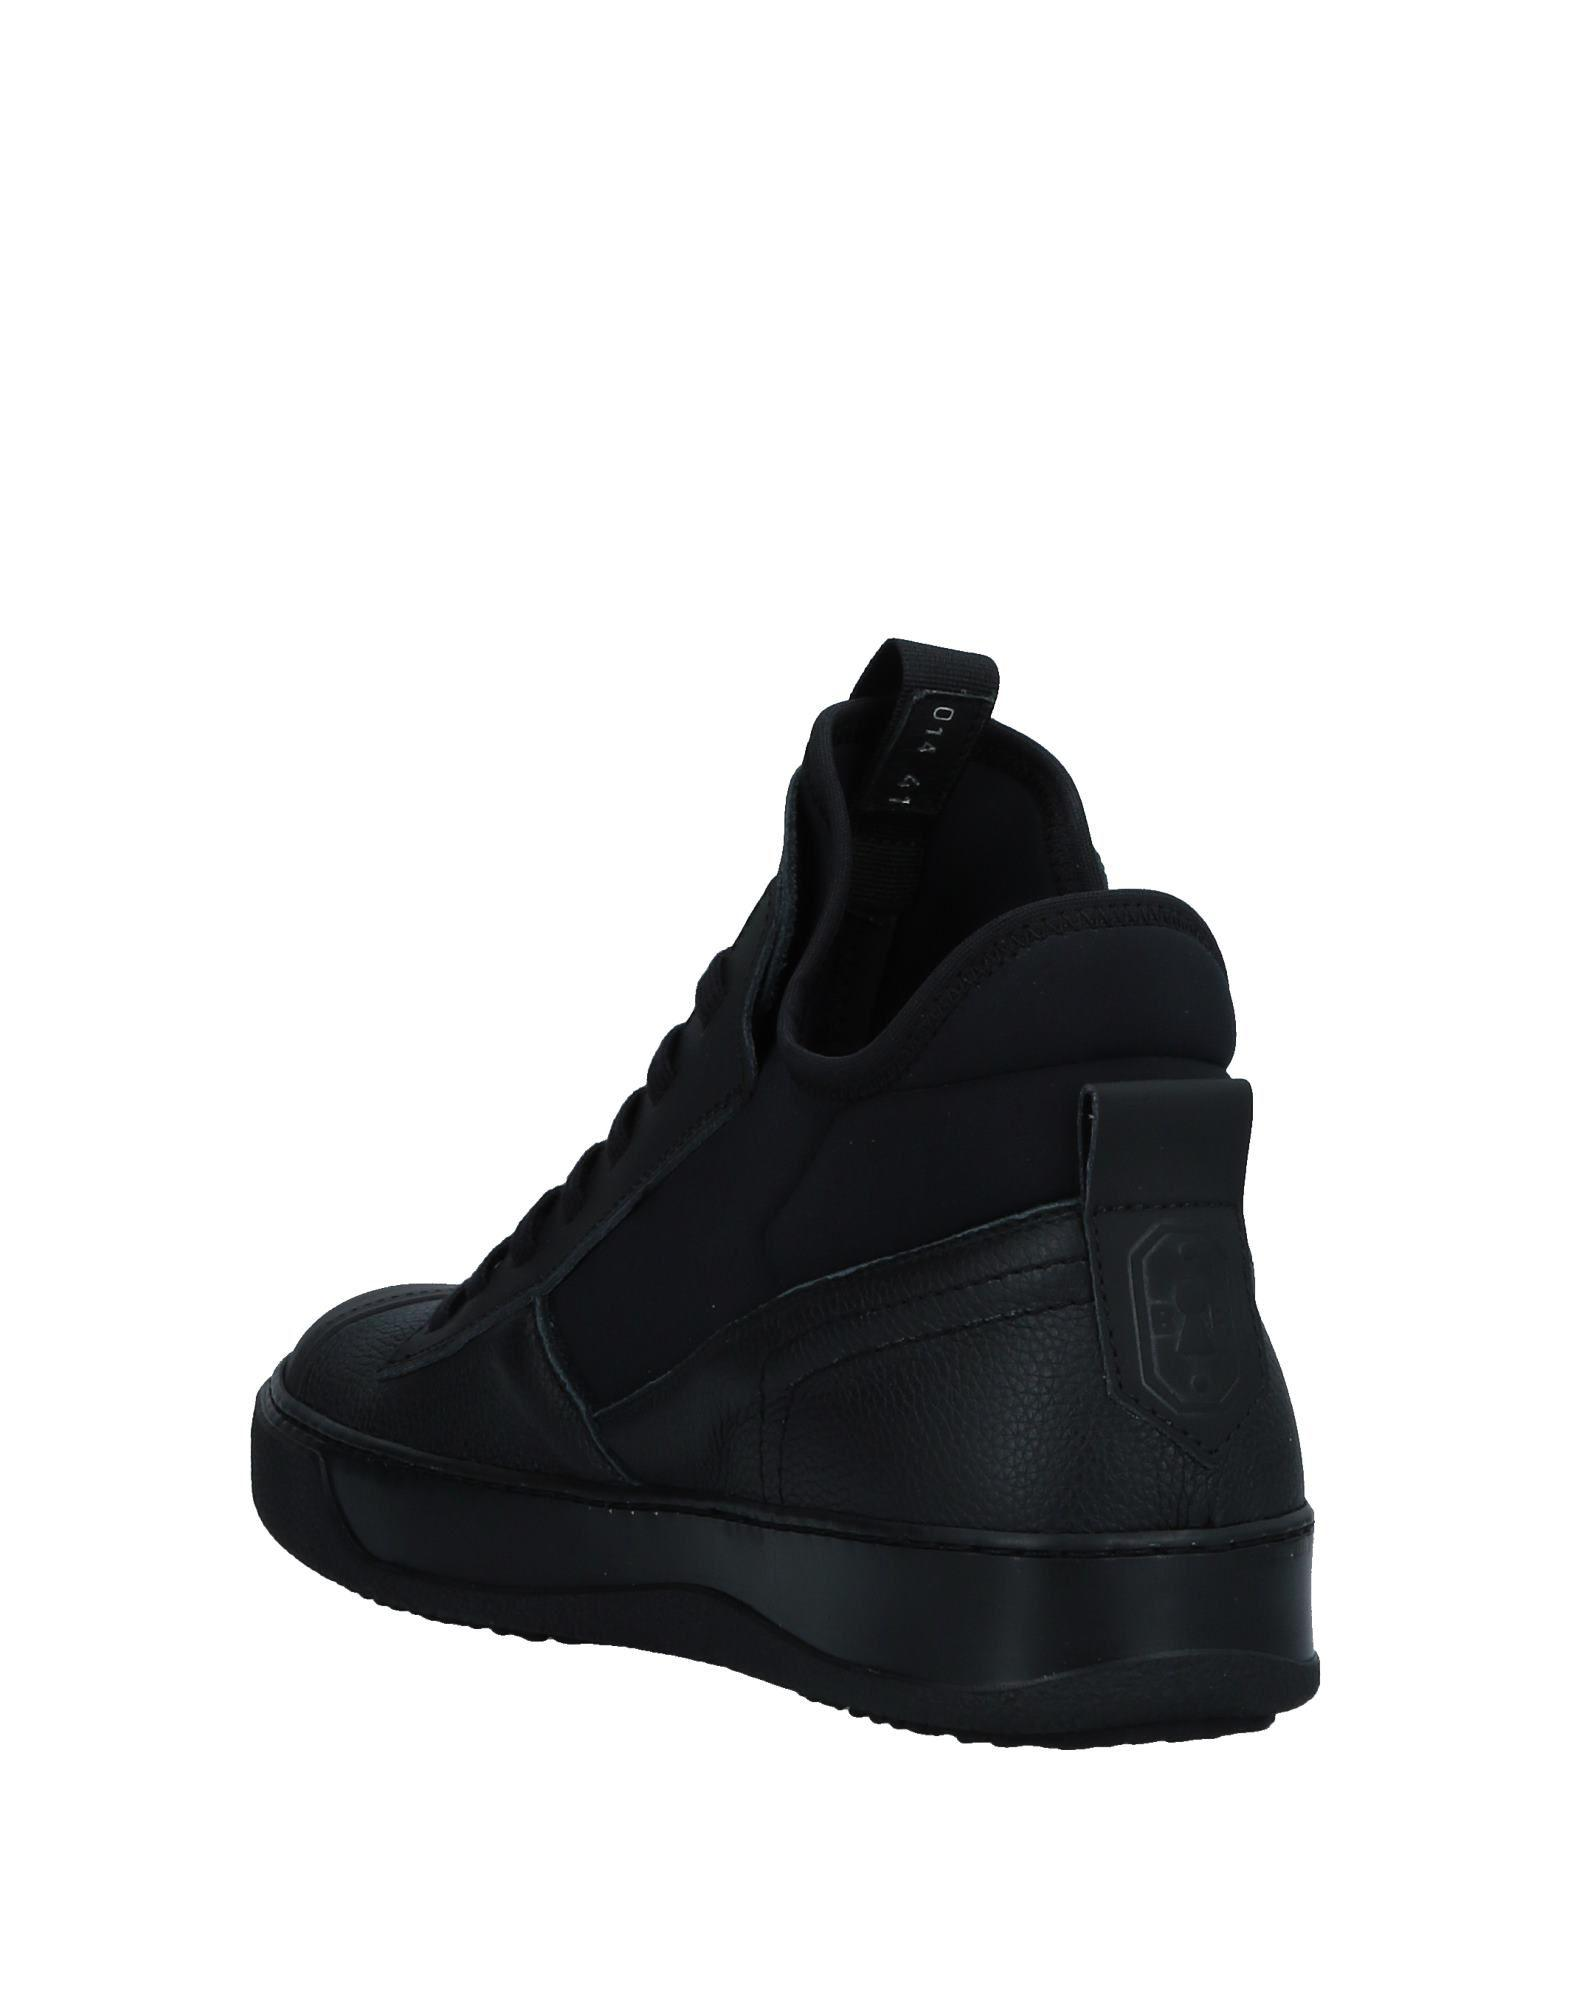 best website a7096 00758 bruno-bordese-Black-High-tops-Sneakers.jpeg